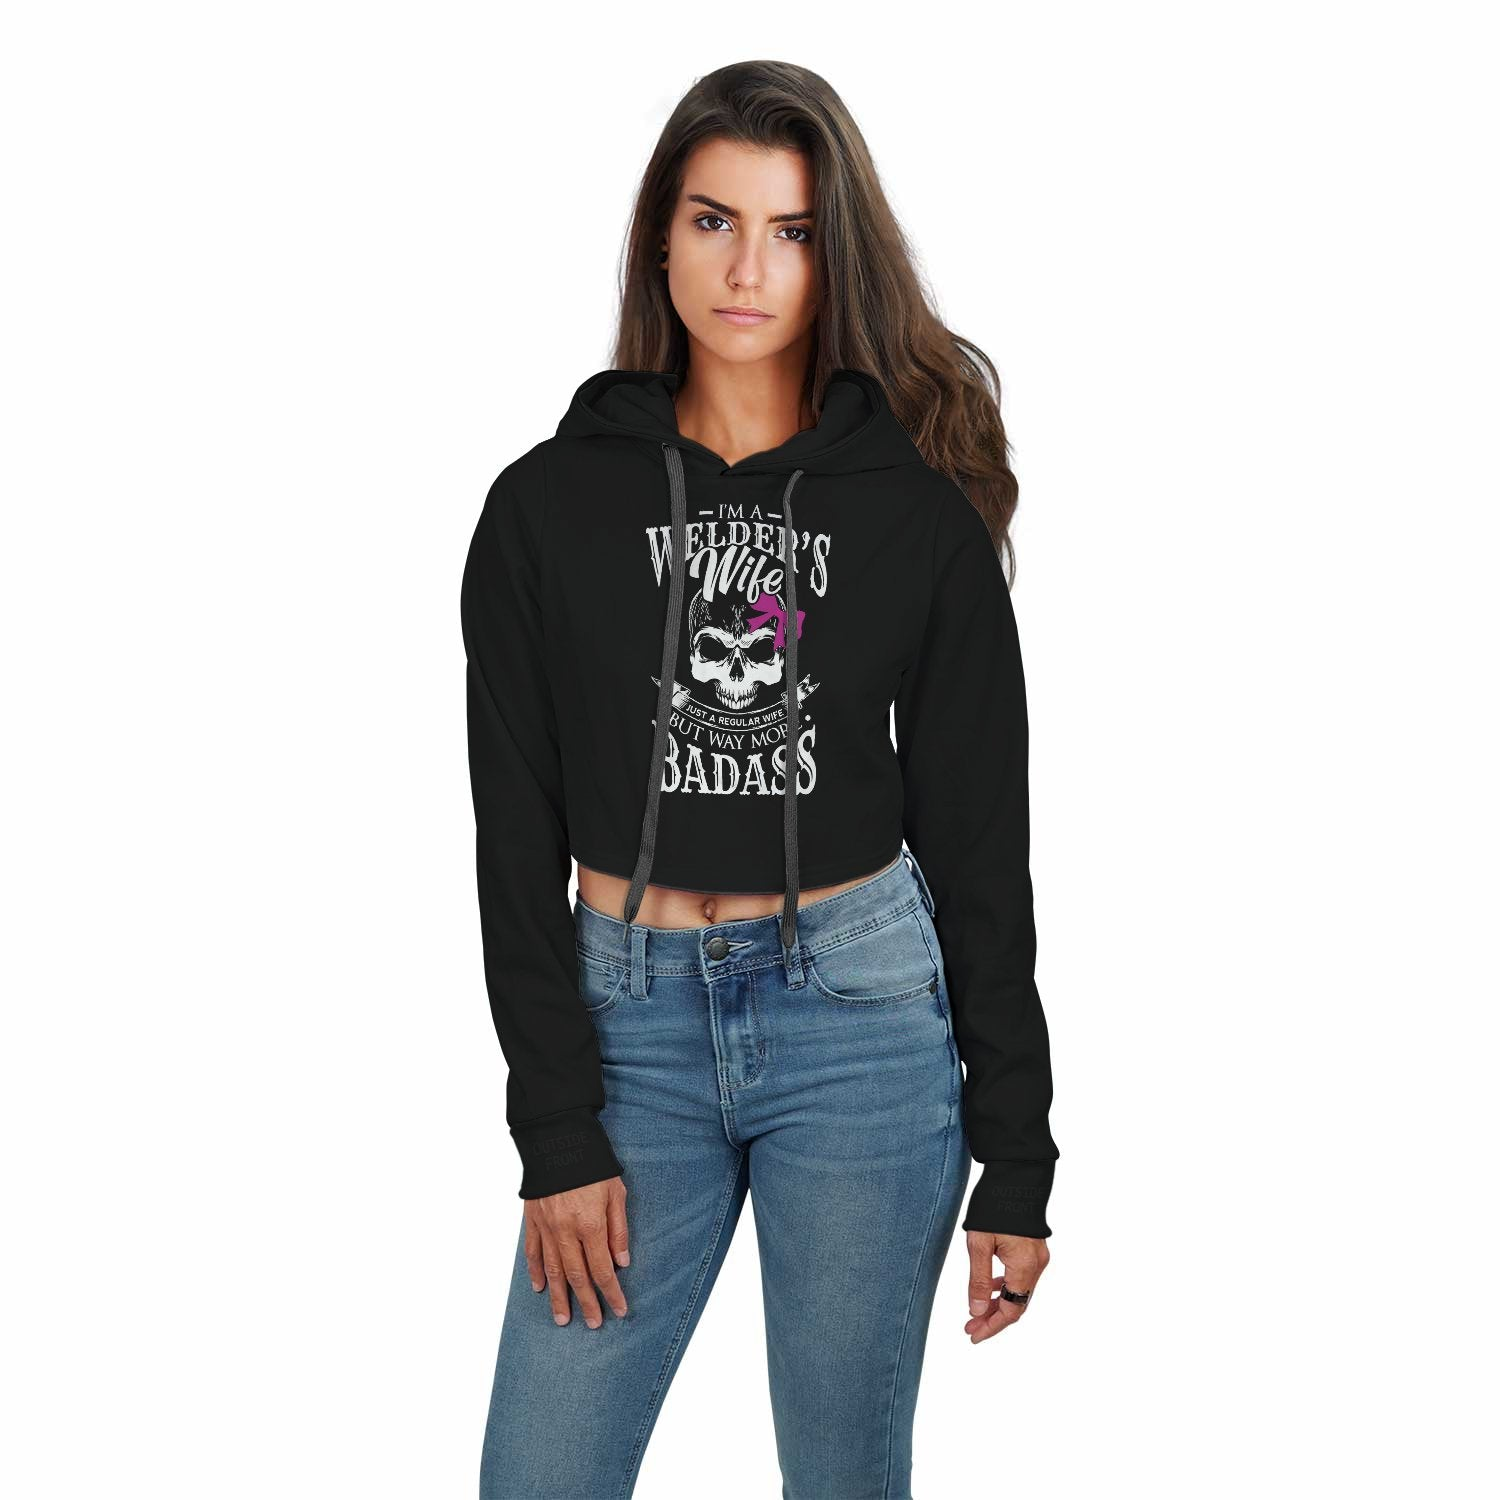 Welder's Wife Just A Regular Wife But More Badass Welder Wife Crop Top Hoodie